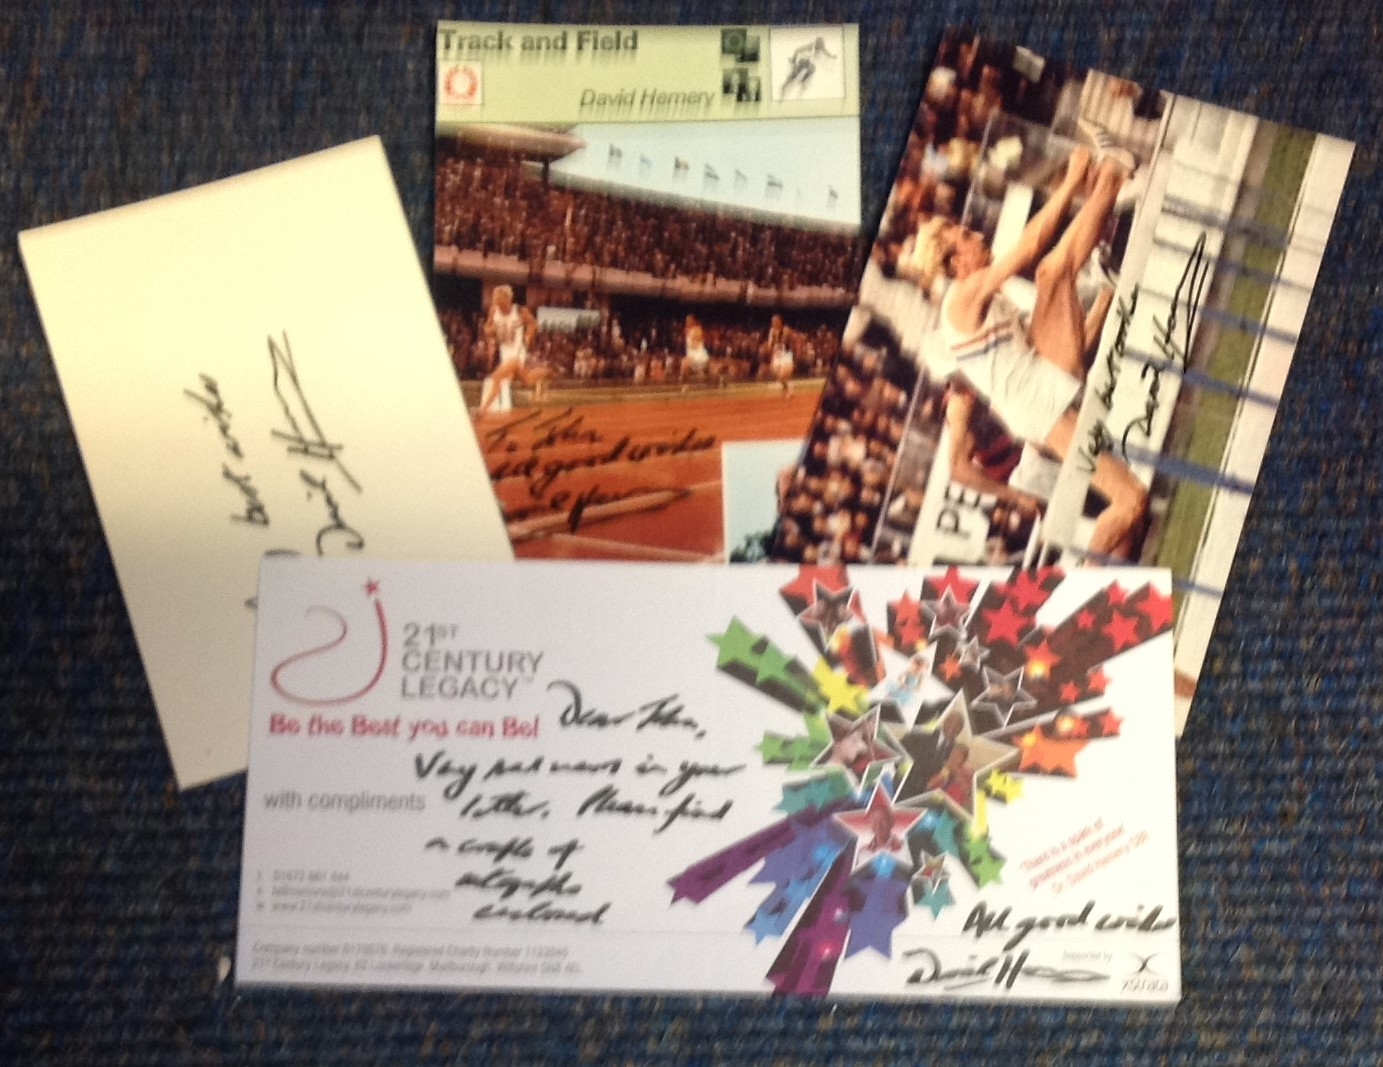 Lot 15 - David Hemery signed collection. 4 items which are 2 6x4 photos, 1 signature piece and 1 compliment